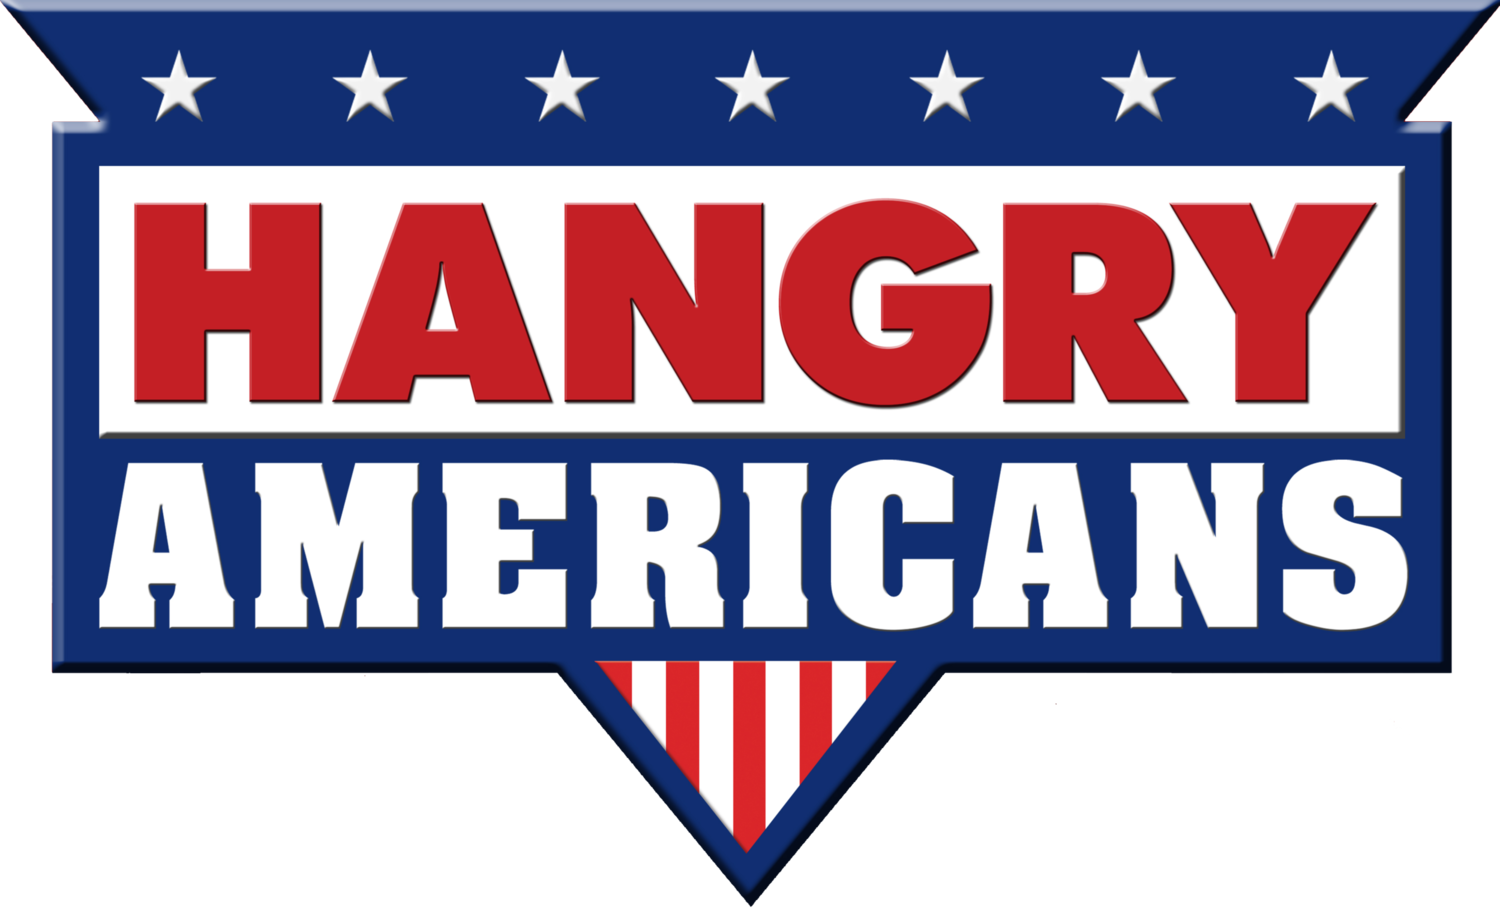 THE HANGRY AMERICANS